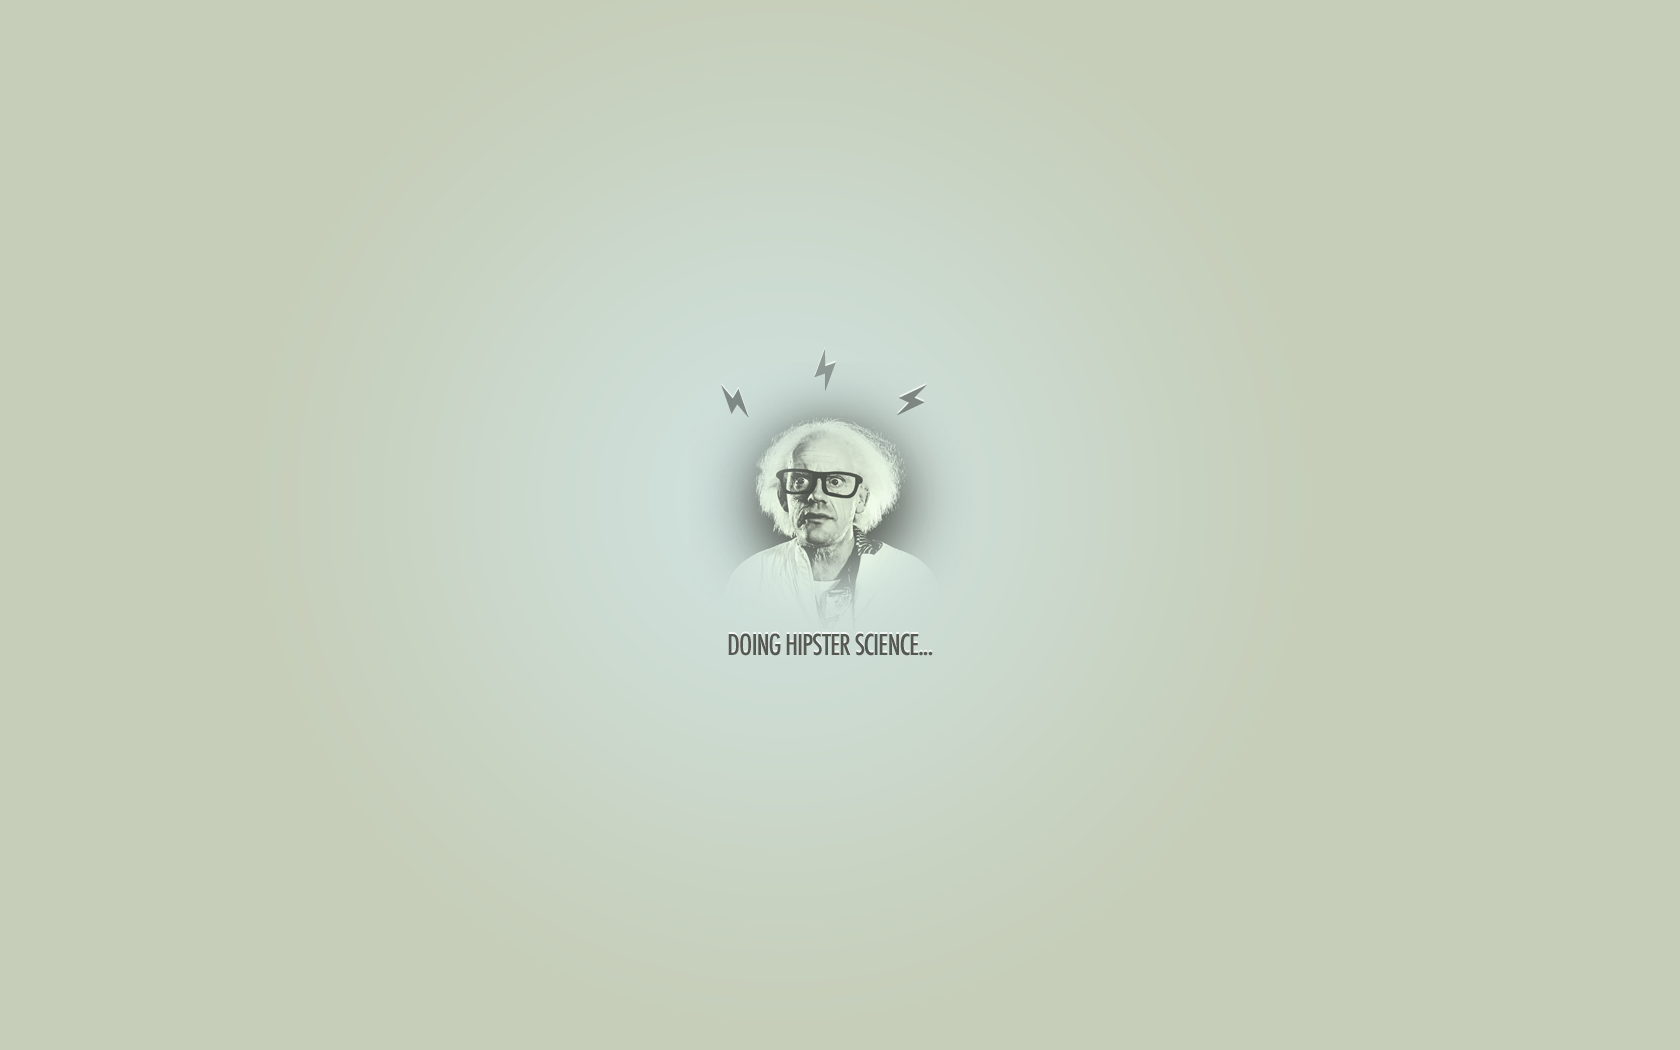 Hipster science 1680x1050